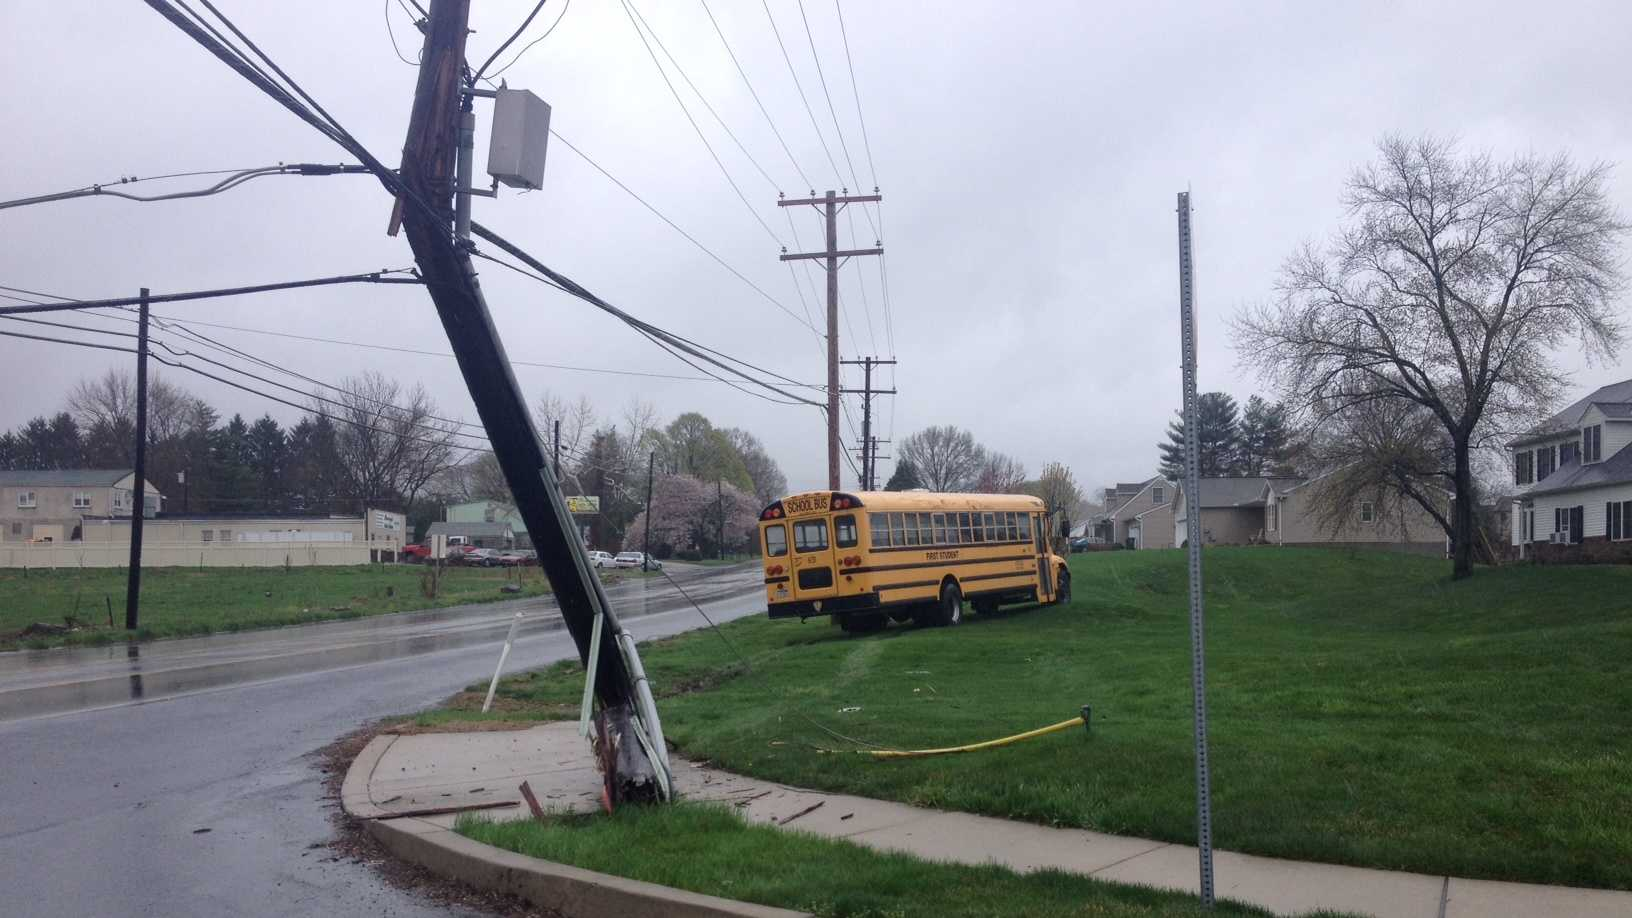 A school bus went off the road and clipped a power pole on Tuesday in Mountville, Lancaster County.